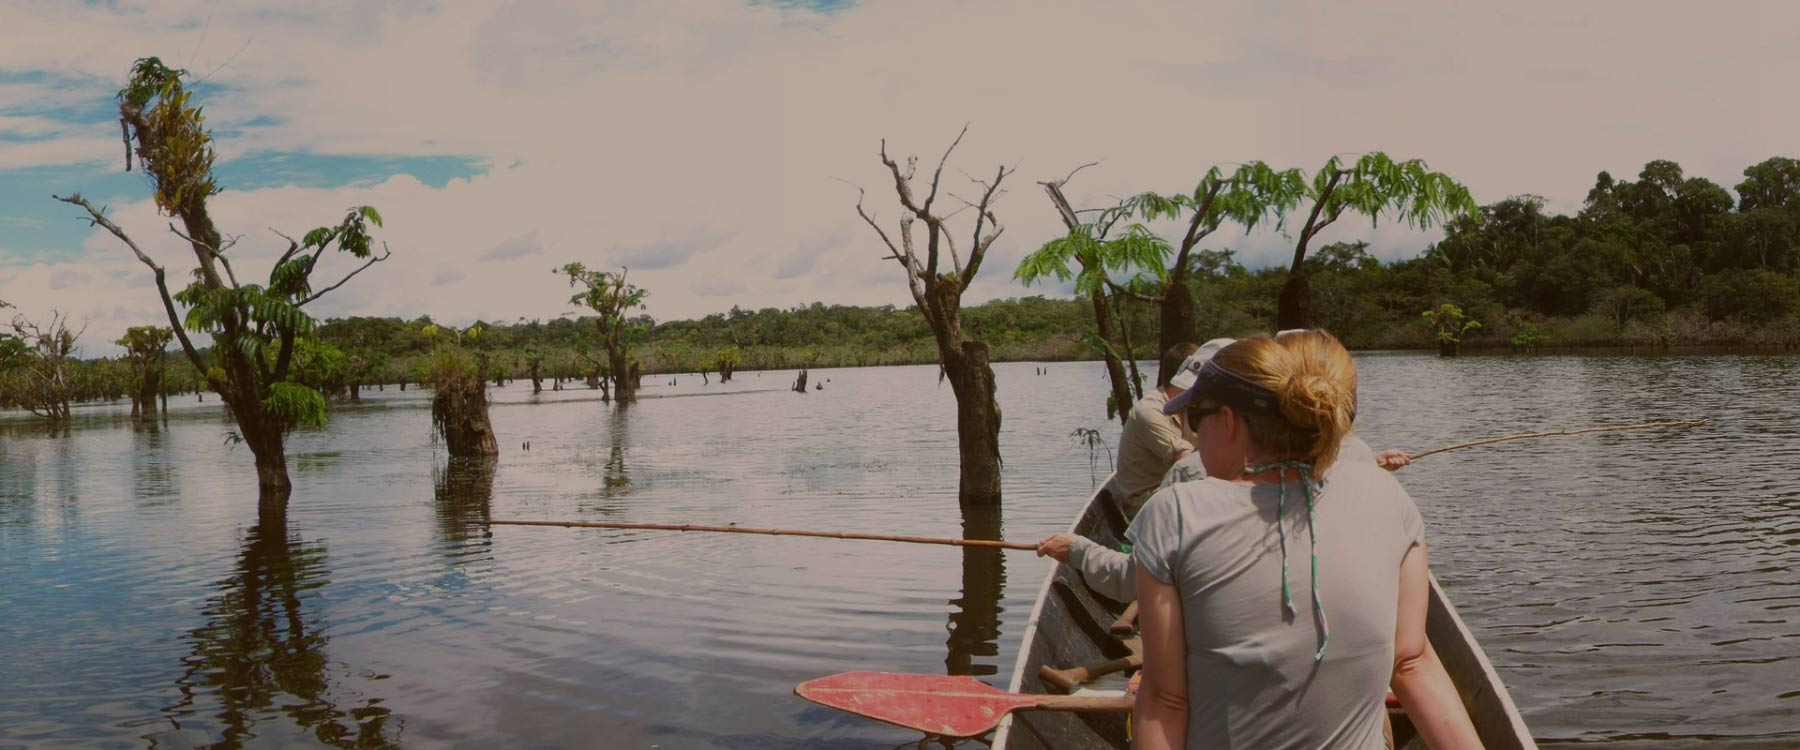 canoeing in the Ecuadorian amazon rainforest paralax